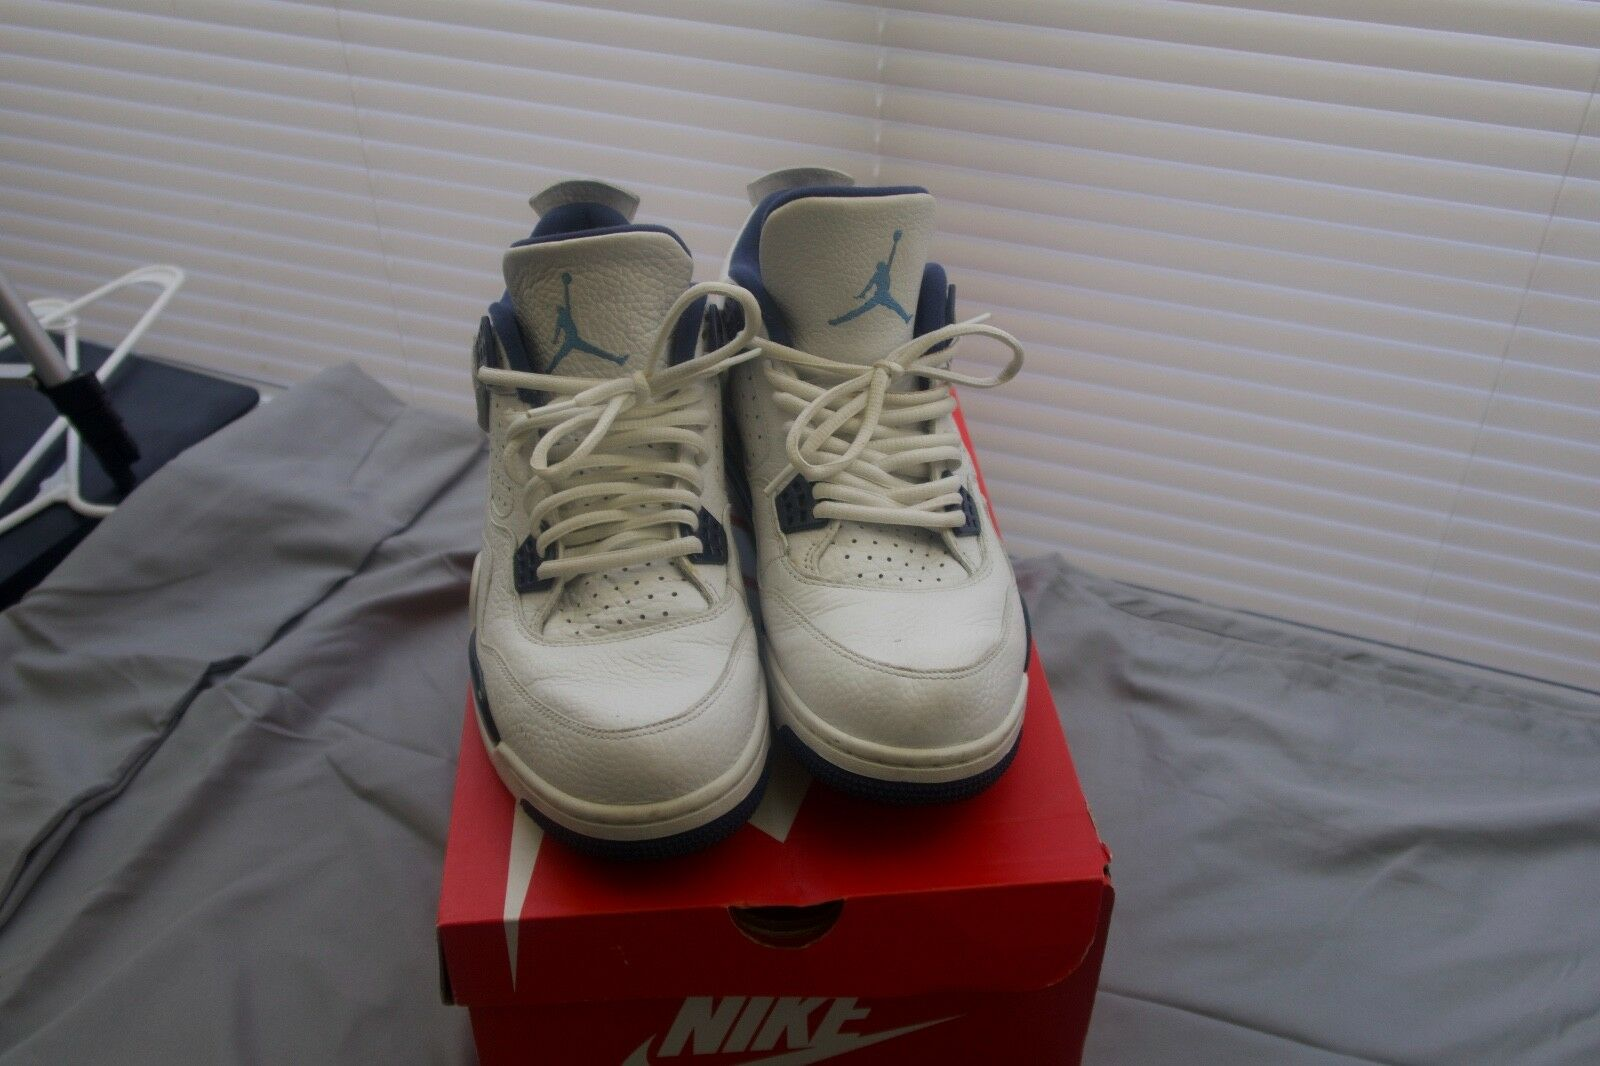 Jordan 4 Navy/White Columbia Price reduction  Athletic shoes Cheap and beautiful fashion